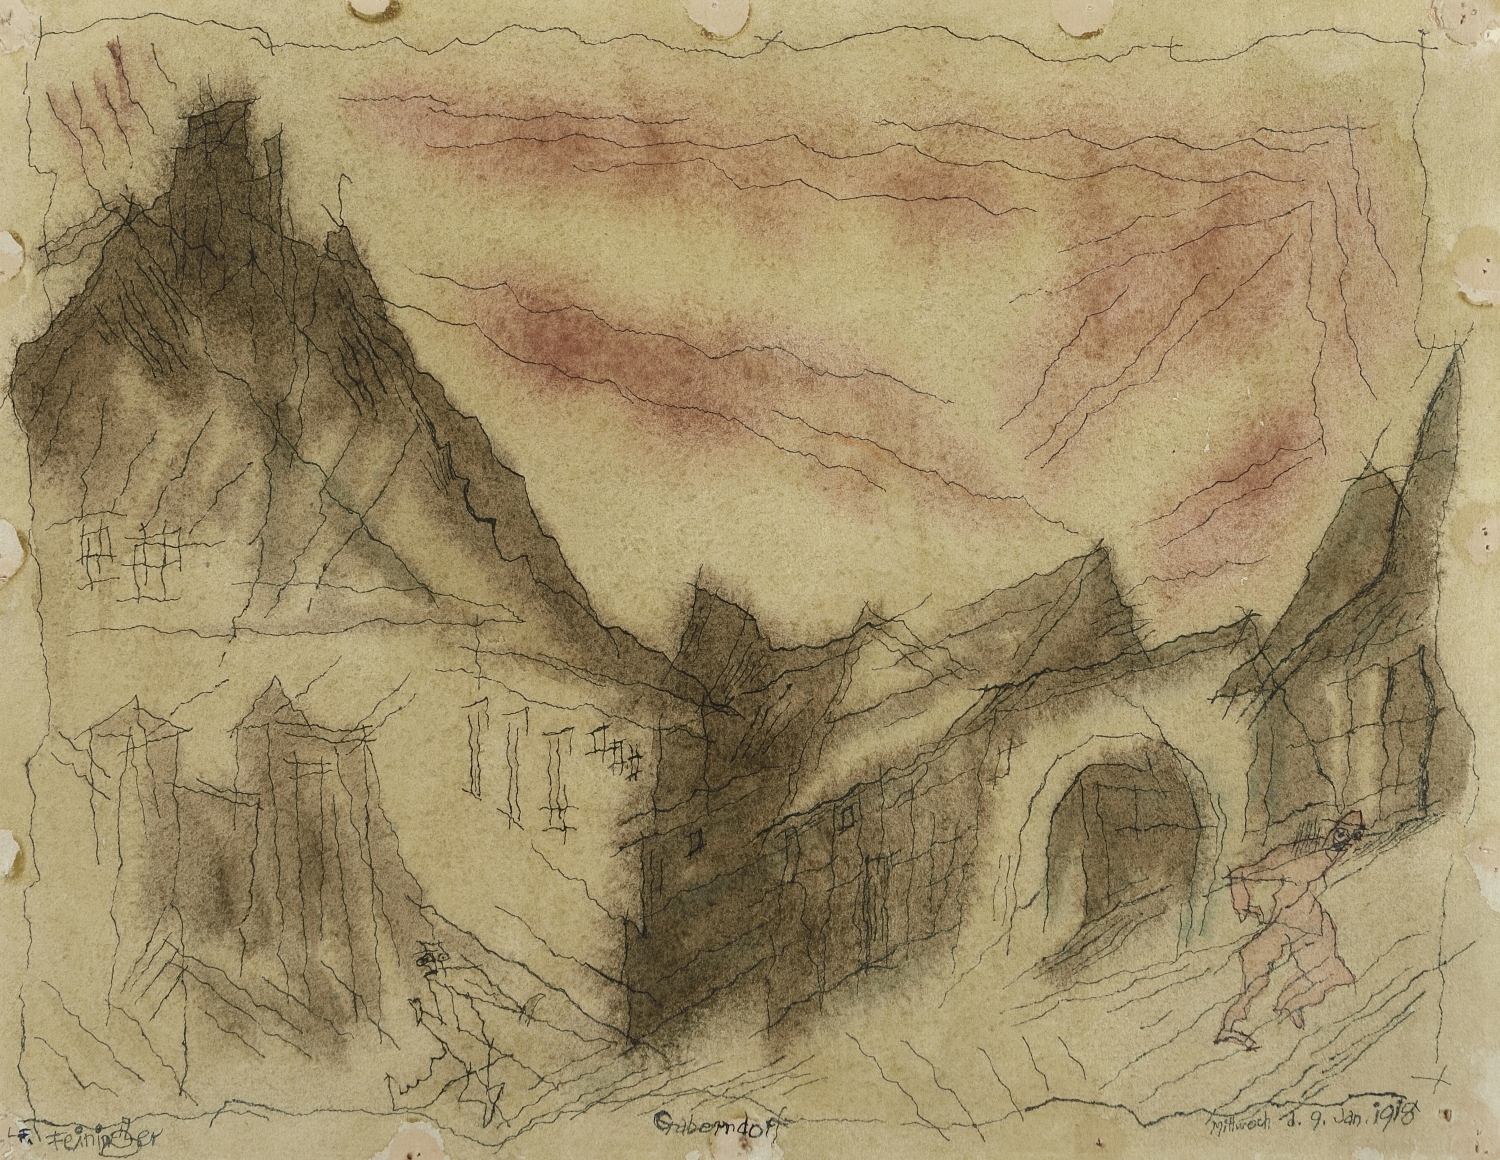 Lyonel Feininger (1871-1956), Gaberndorf, 1918, Pen, ink, and watercolor on paper, 9 1/3 x 12 1/8 in. (23.7 x 30.8 cm), Signed lower left: Feininger, Dated lower right: 1918, Titled lower center: Gaberndorf